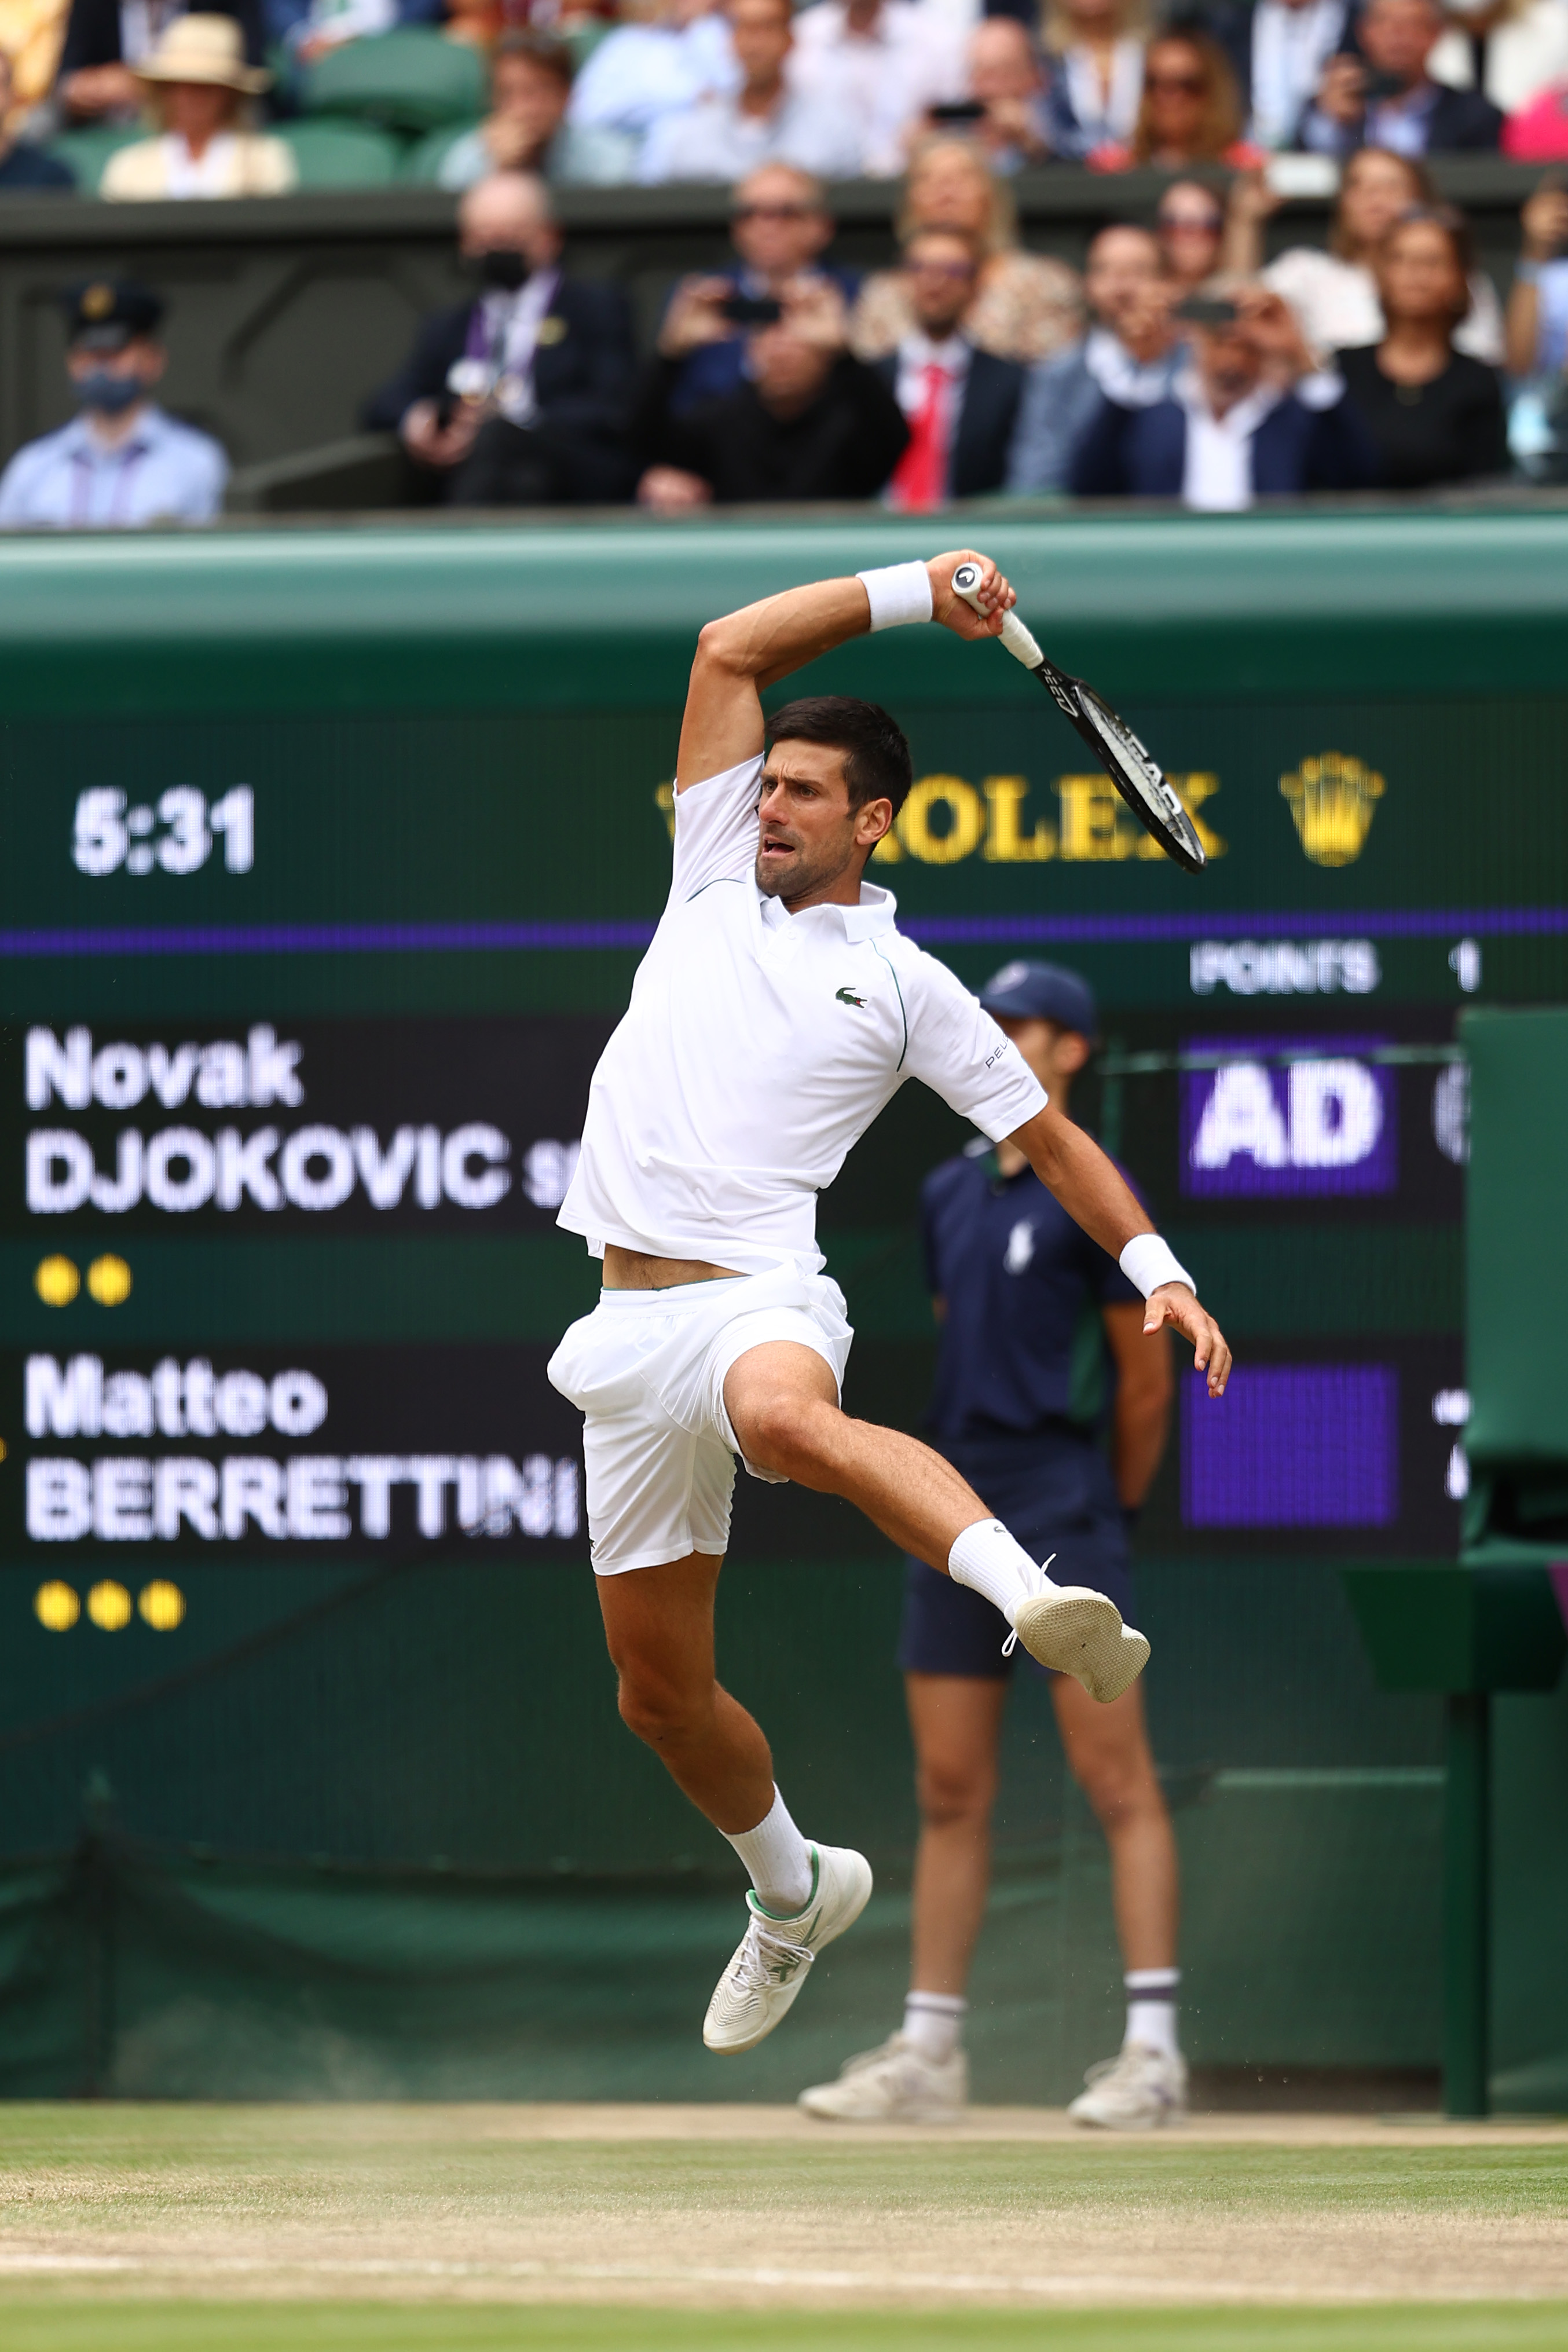 Novak Djokovic of Serbia plays a forehand during his men's Singles Final match against Matteo Berrettini of Italy on Day Thirteen of The Championships - Wimbledon 2021 at All England Lawn Tennis and Croquet Club on July 11, 2021 in London, England.